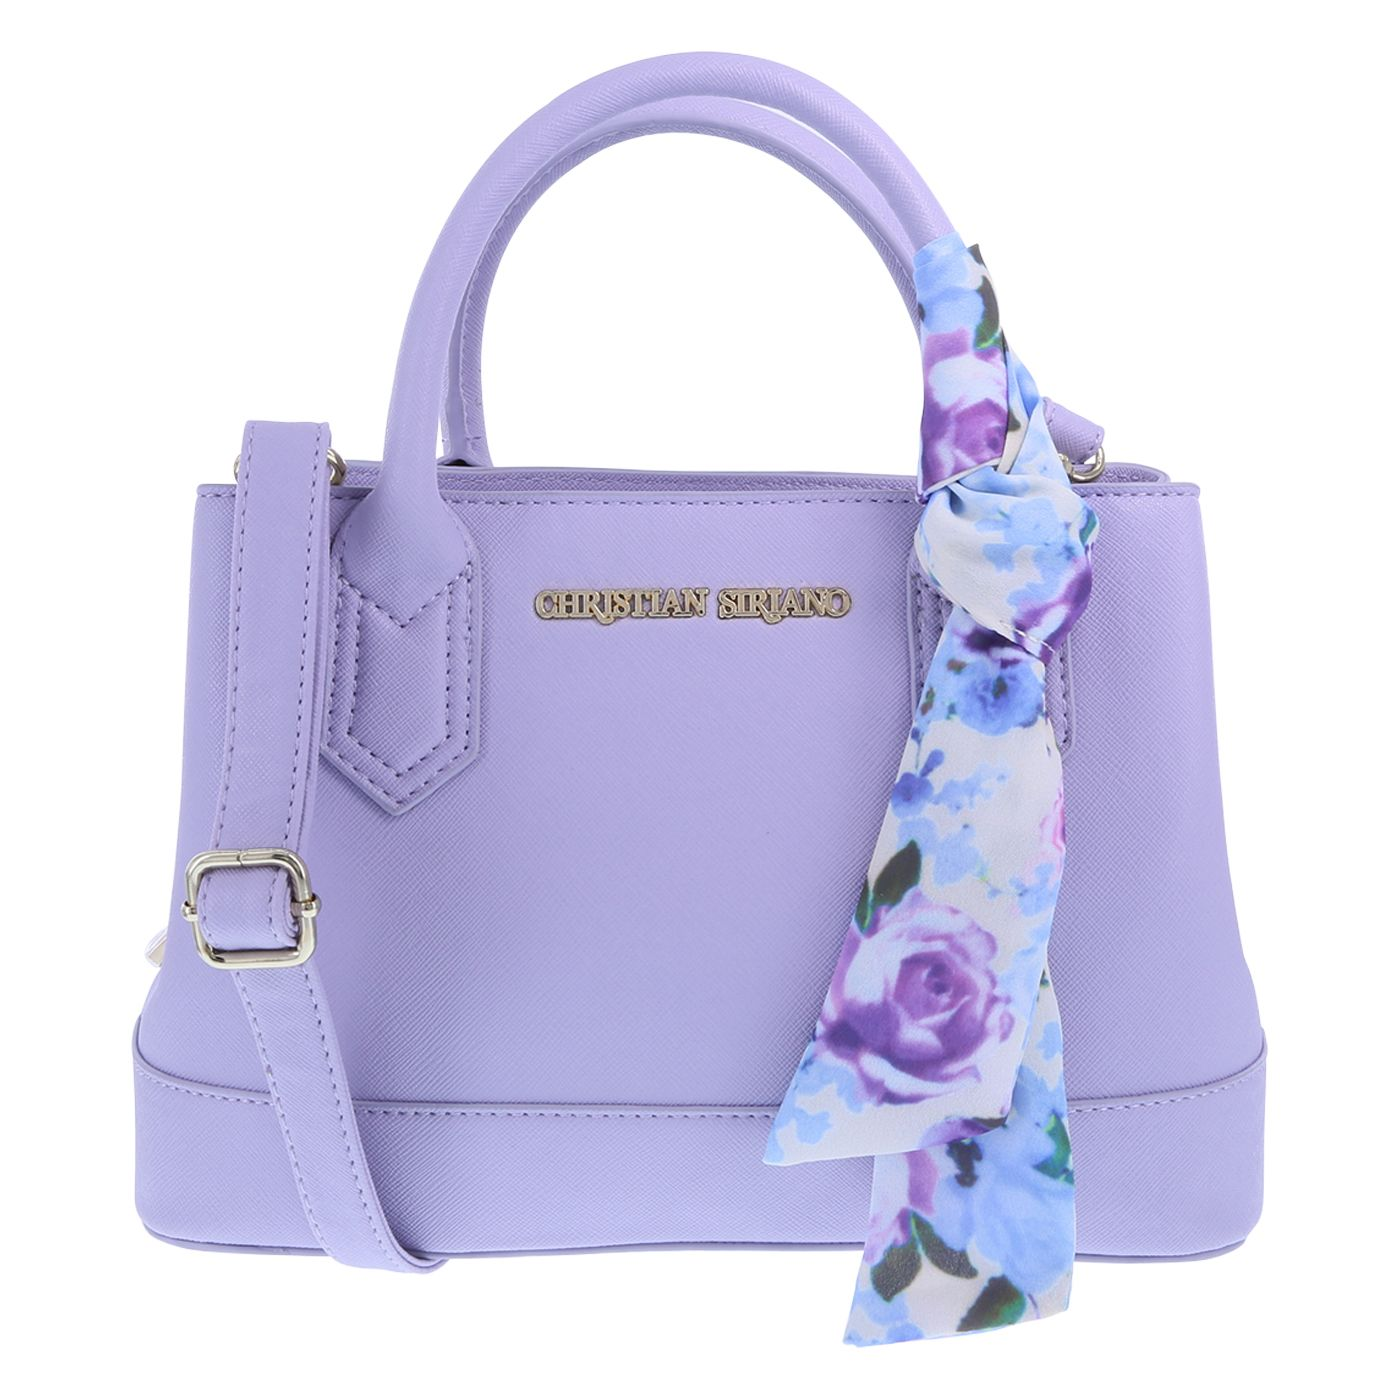 How cute is this Mini Sybil Crossbody Handbag by Christian Siriano   payless!  Purple perfection for Easter 7a9049f0da7cc